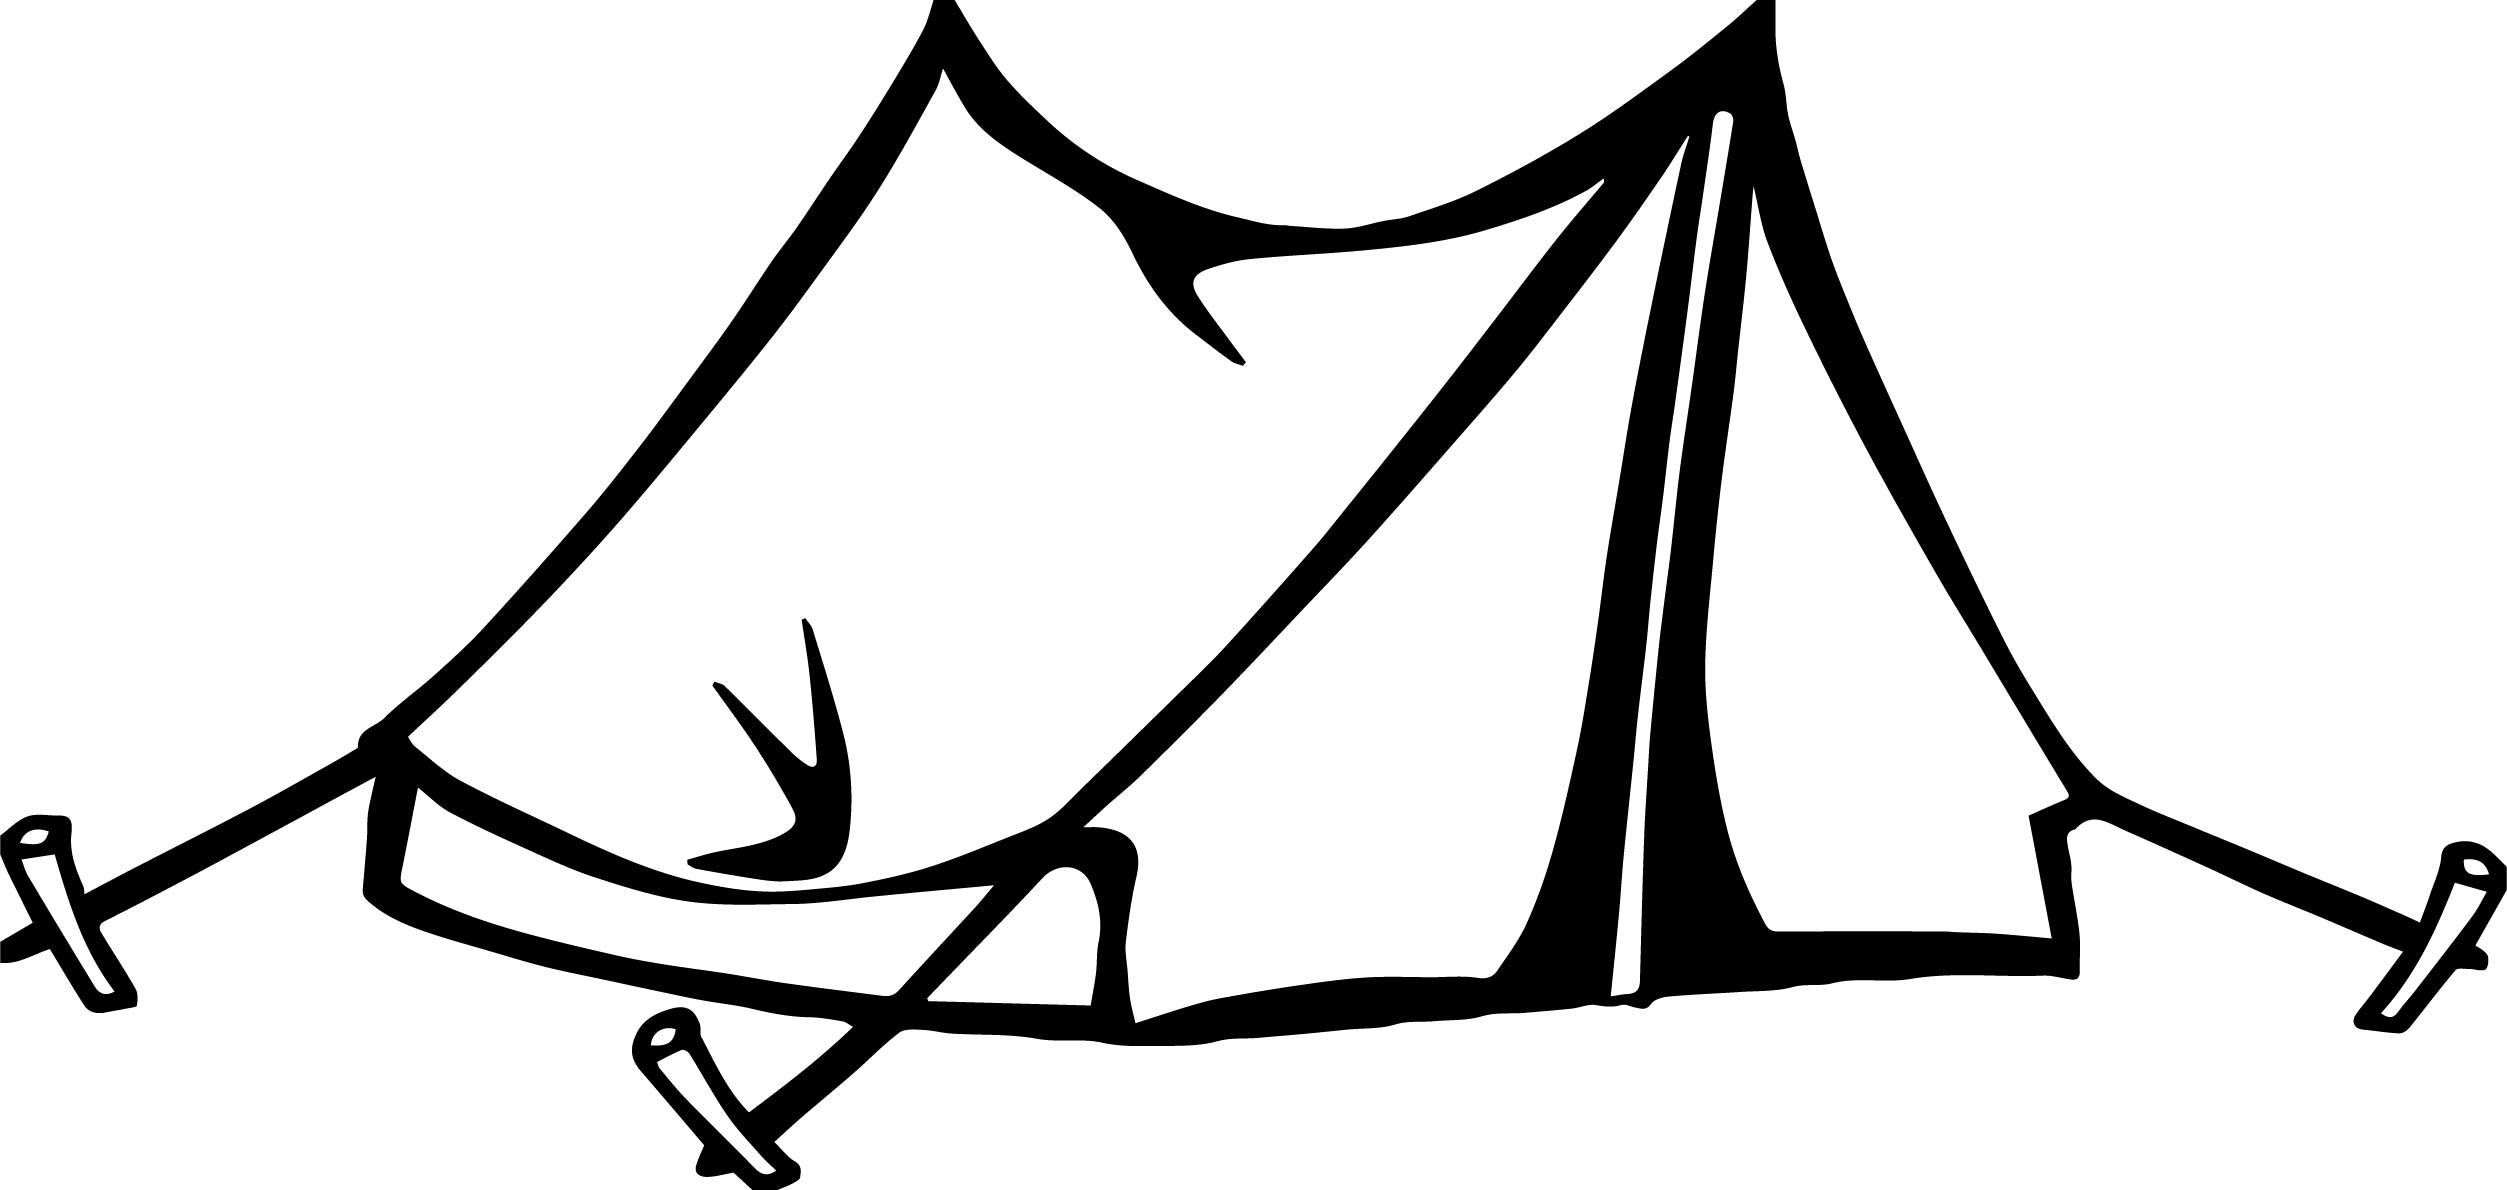 Camping Tent Clip Art Sketch Coloring Page